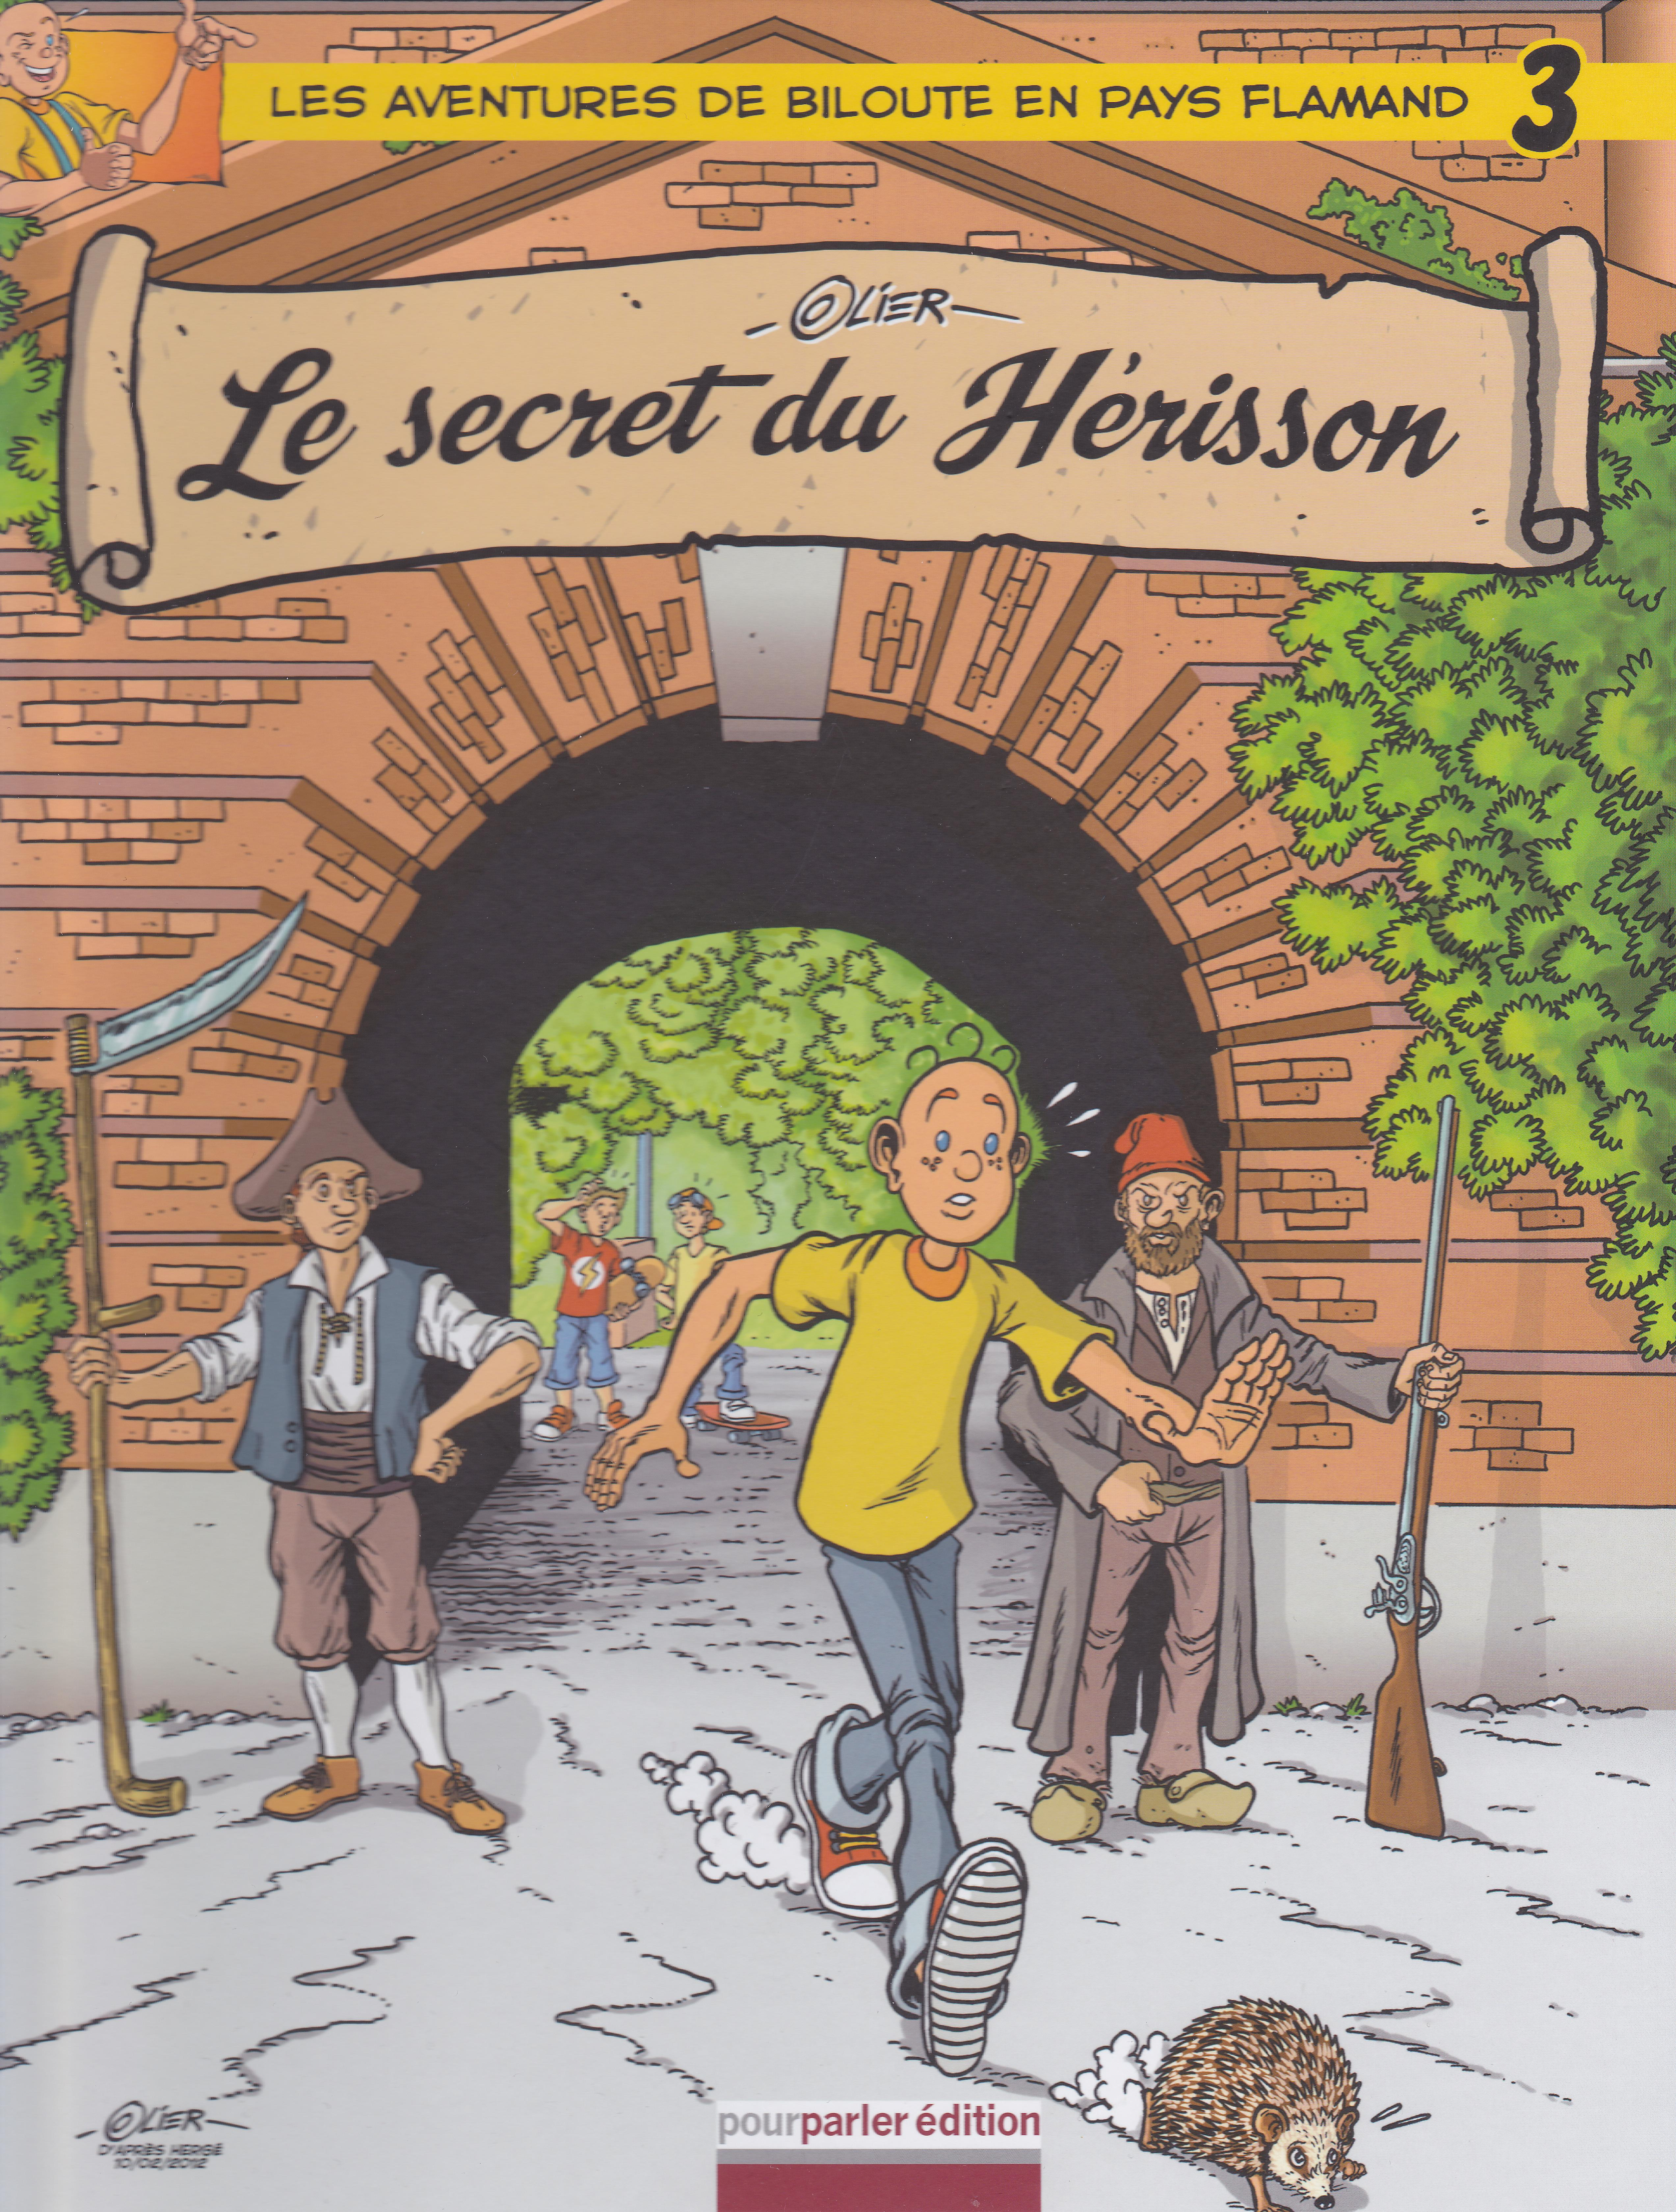 Le secret du Hérisson